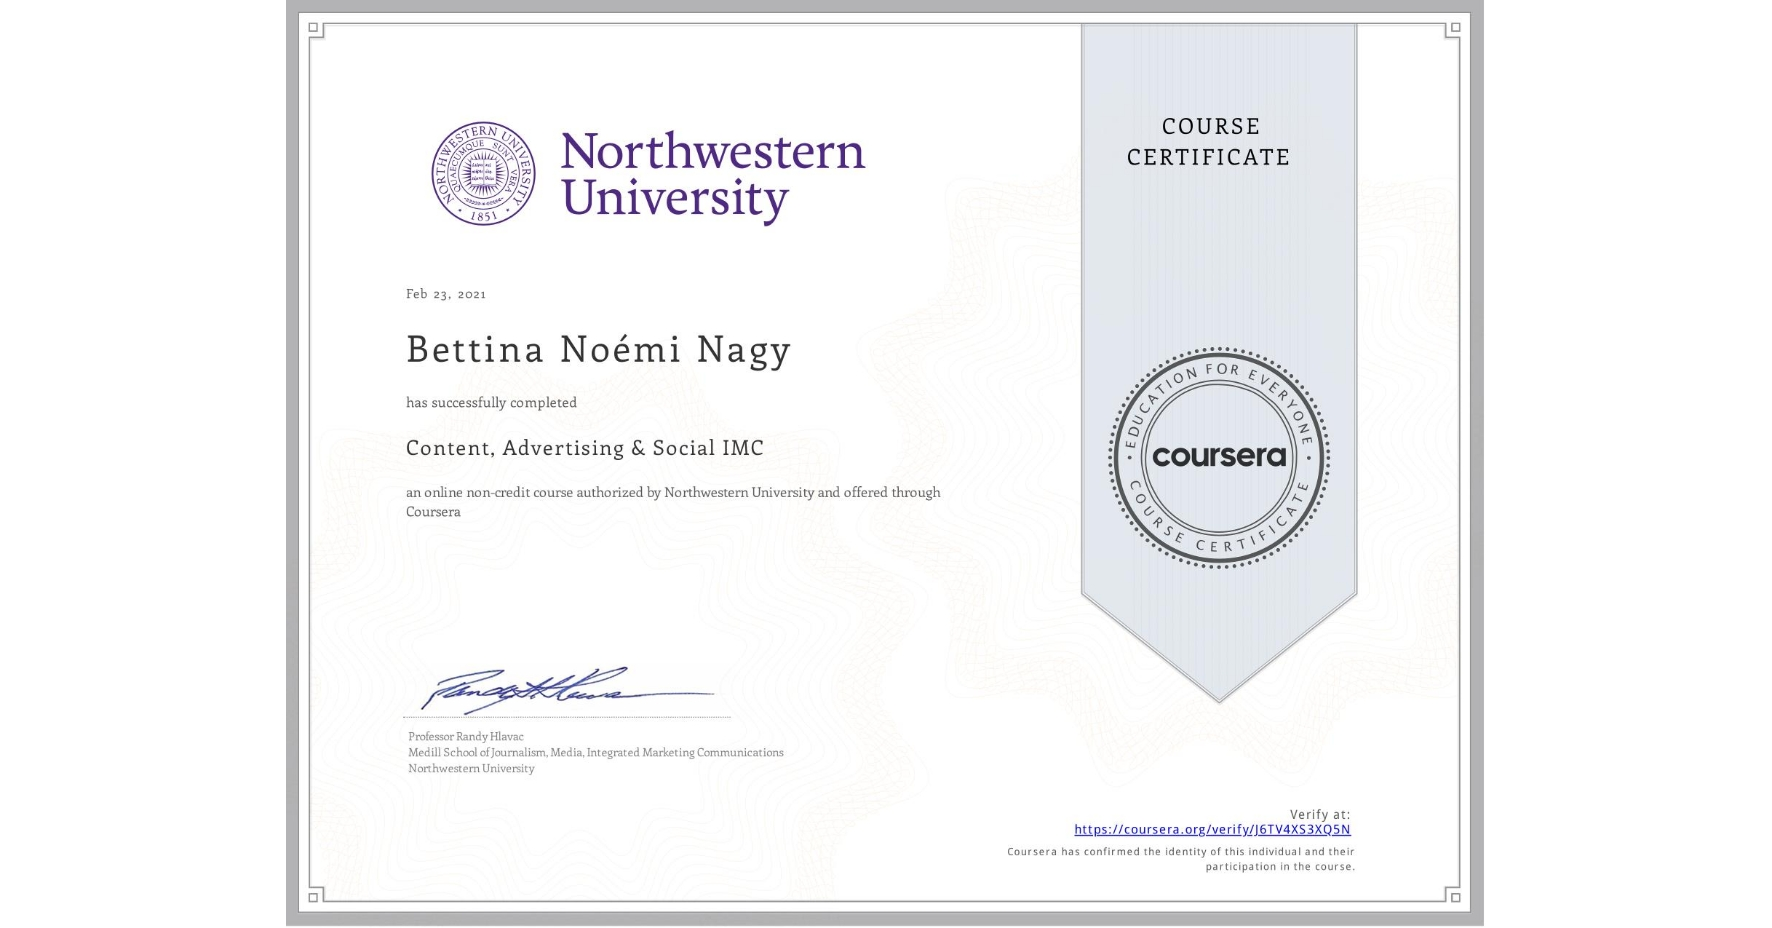 View certificate for Bettina Noémi Nagy, Content, Advertising & Social IMC, an online non-credit course authorized by Northwestern University and offered through Coursera